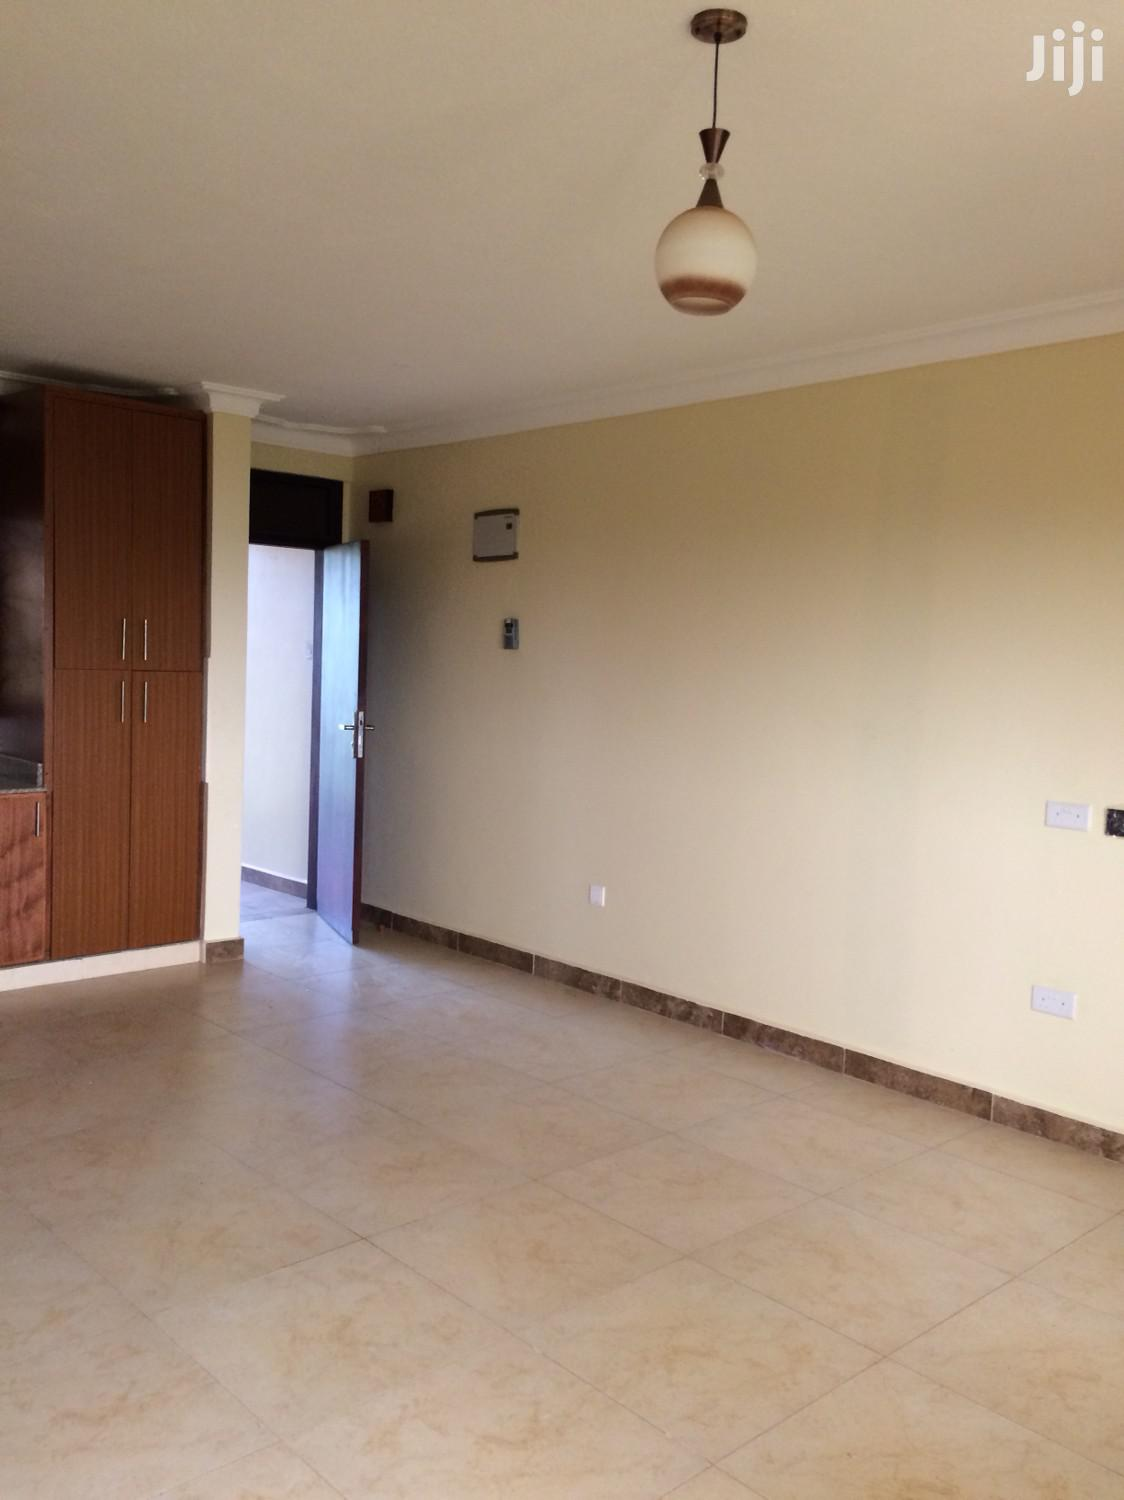 Archive: New Hot Cake Two Bedroom Apartment At Buziga For Rent